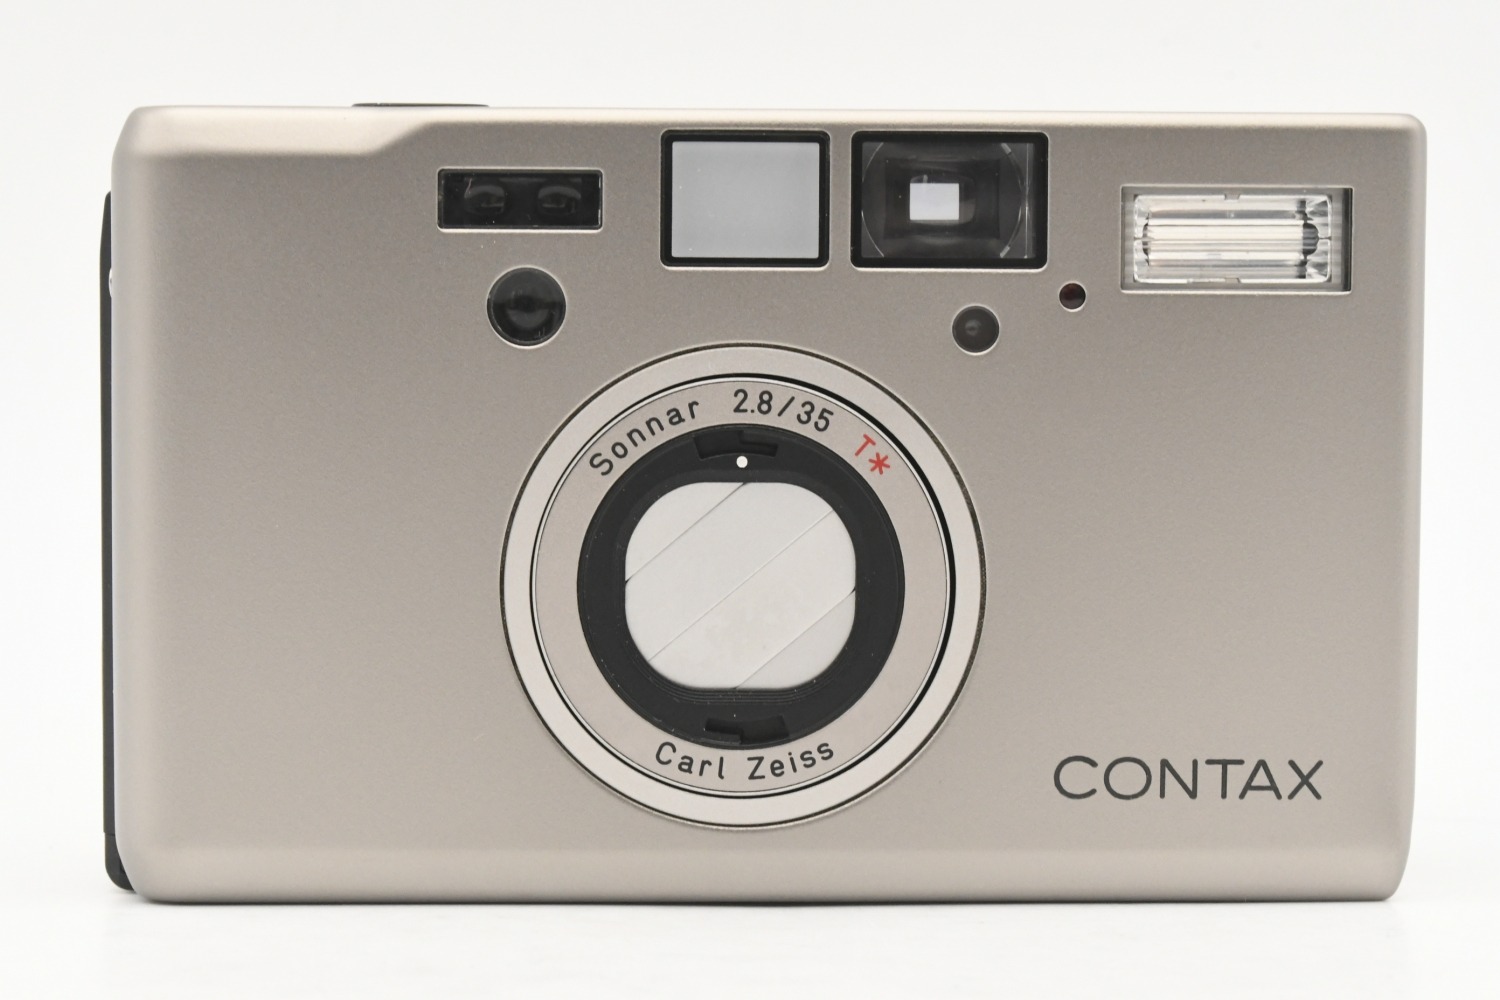 CONTAX コンタックス T3 Silver 後期 Carl Zeiss Sonnar 35mm F2.8 T* 【中古】